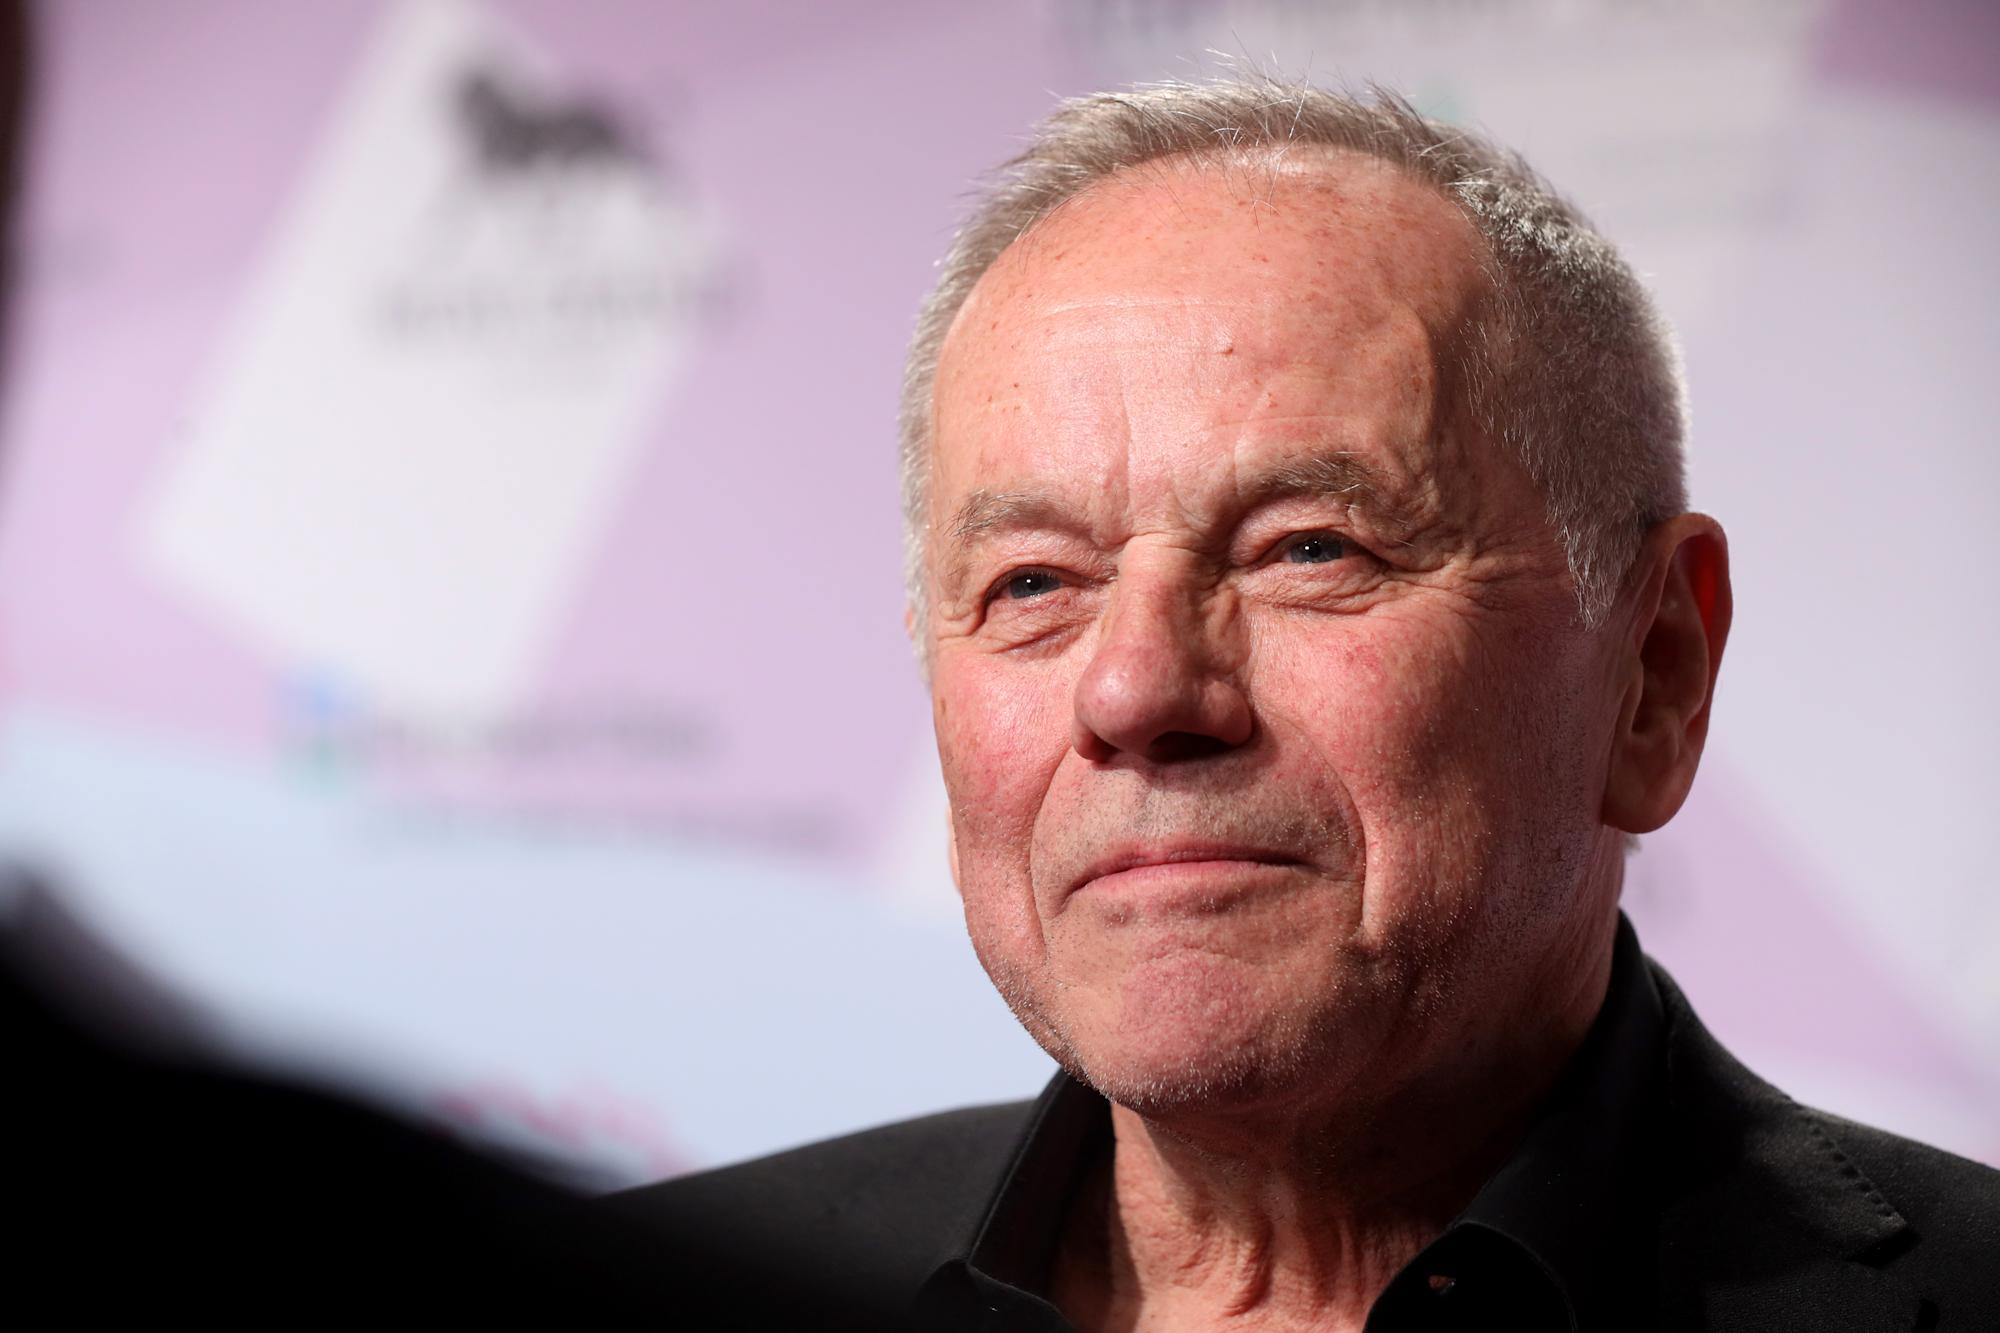 Wolfgang Puck opens up about abusive father and mental health in new documentary: 'Finding a mentor is really the most important thing'